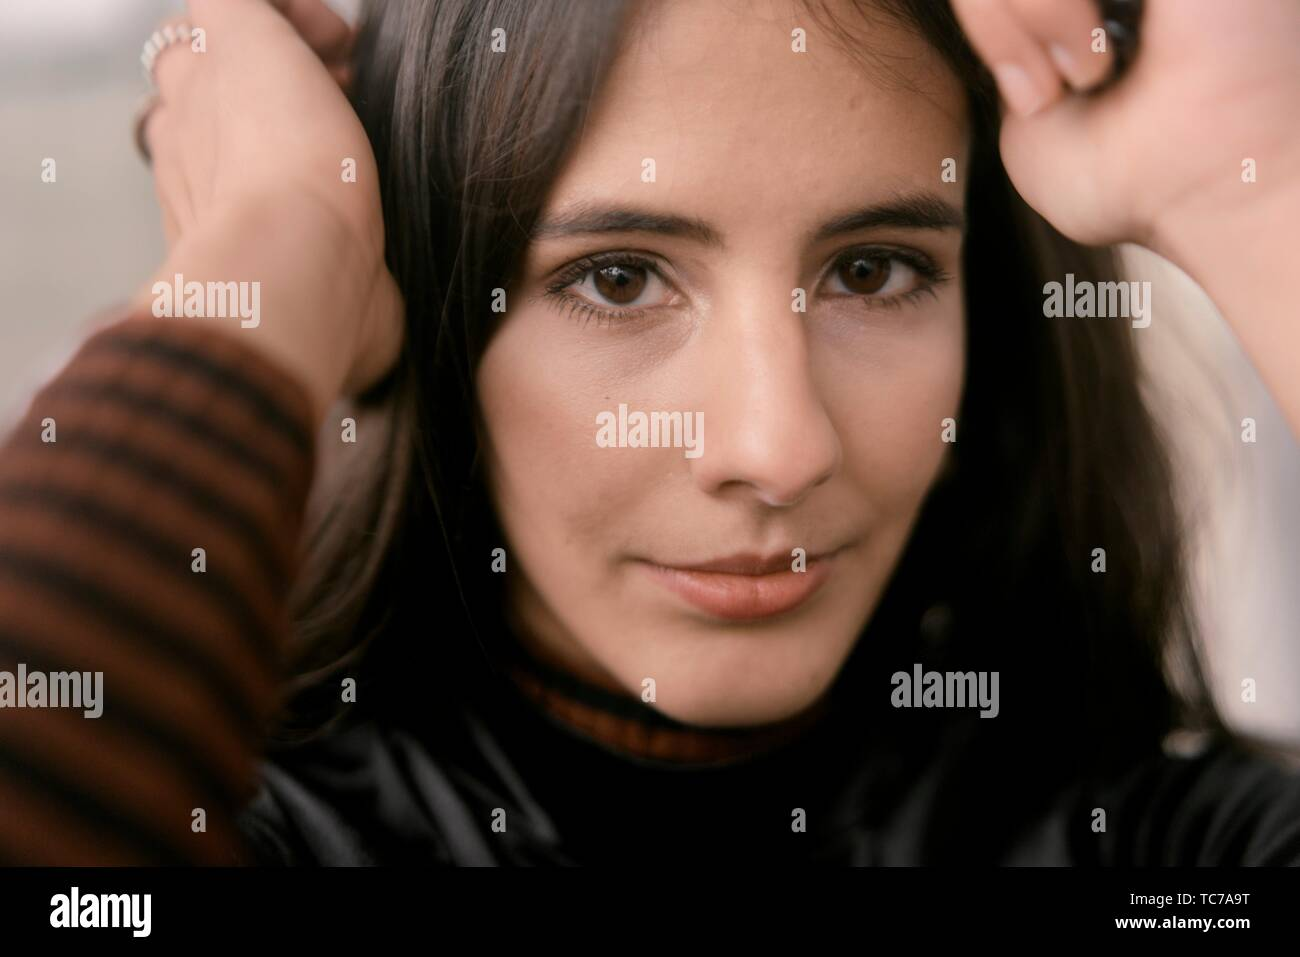 intimate close-up portrait of fashionable woman, sensitive character, in Munich, Germany - Stock Image